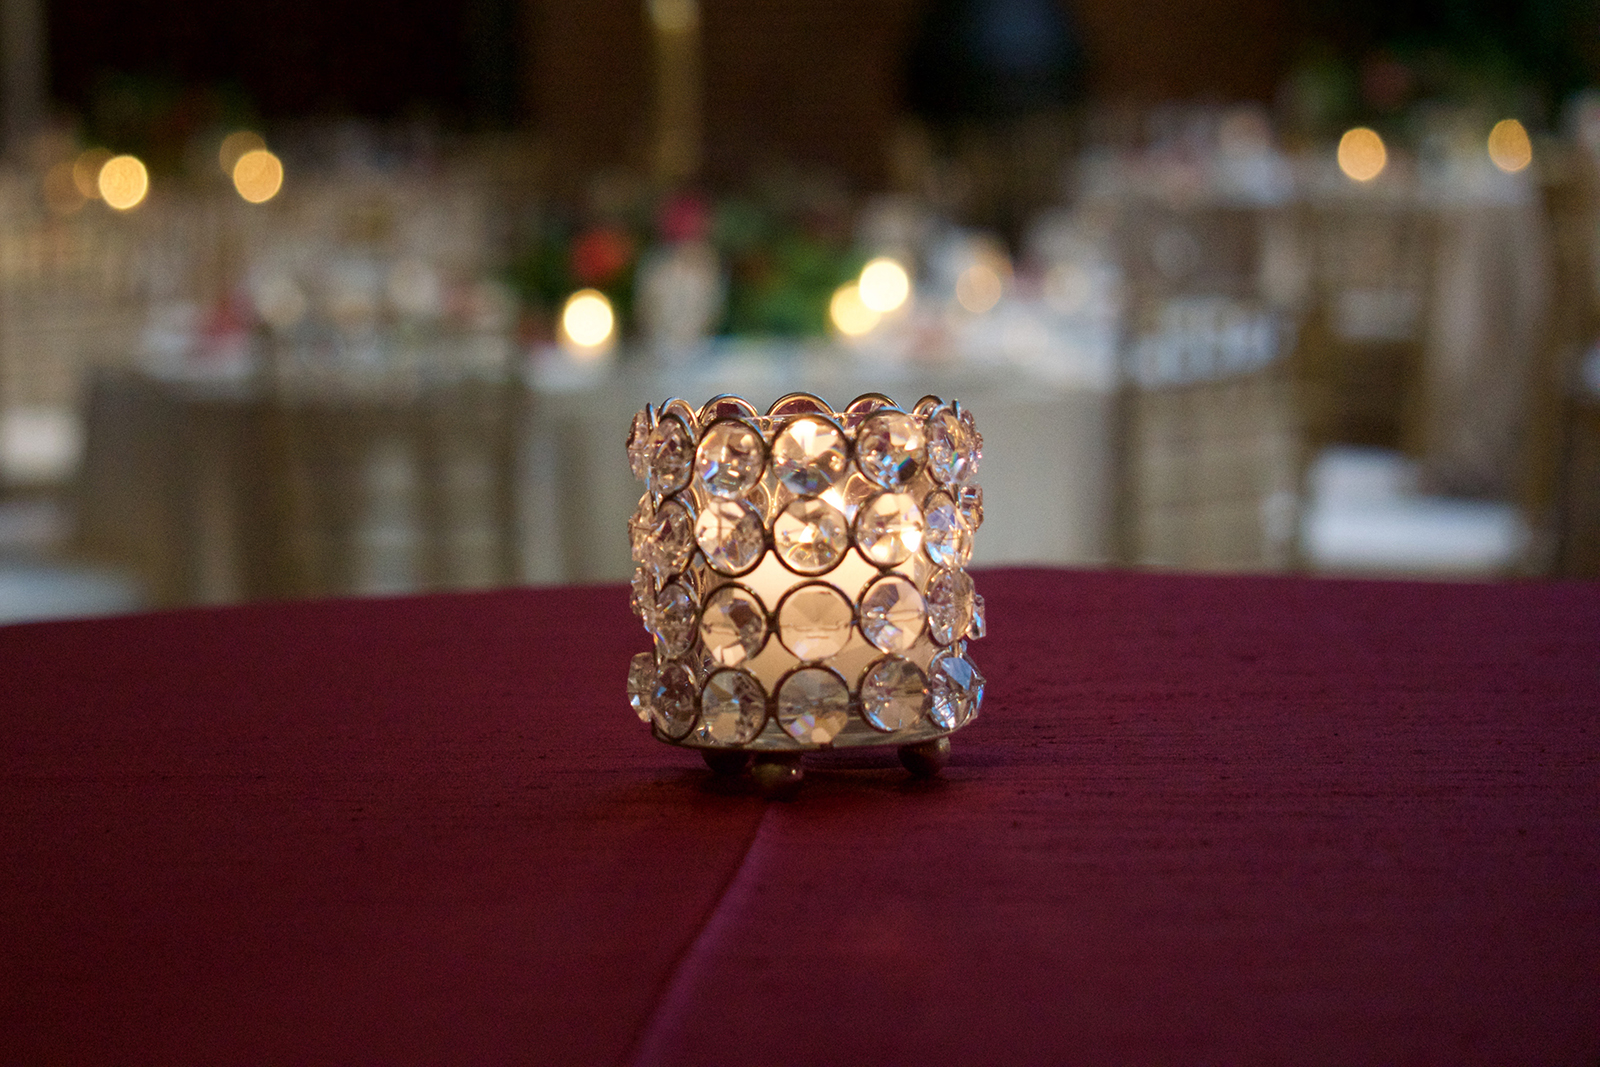 Candle Holders and Votives